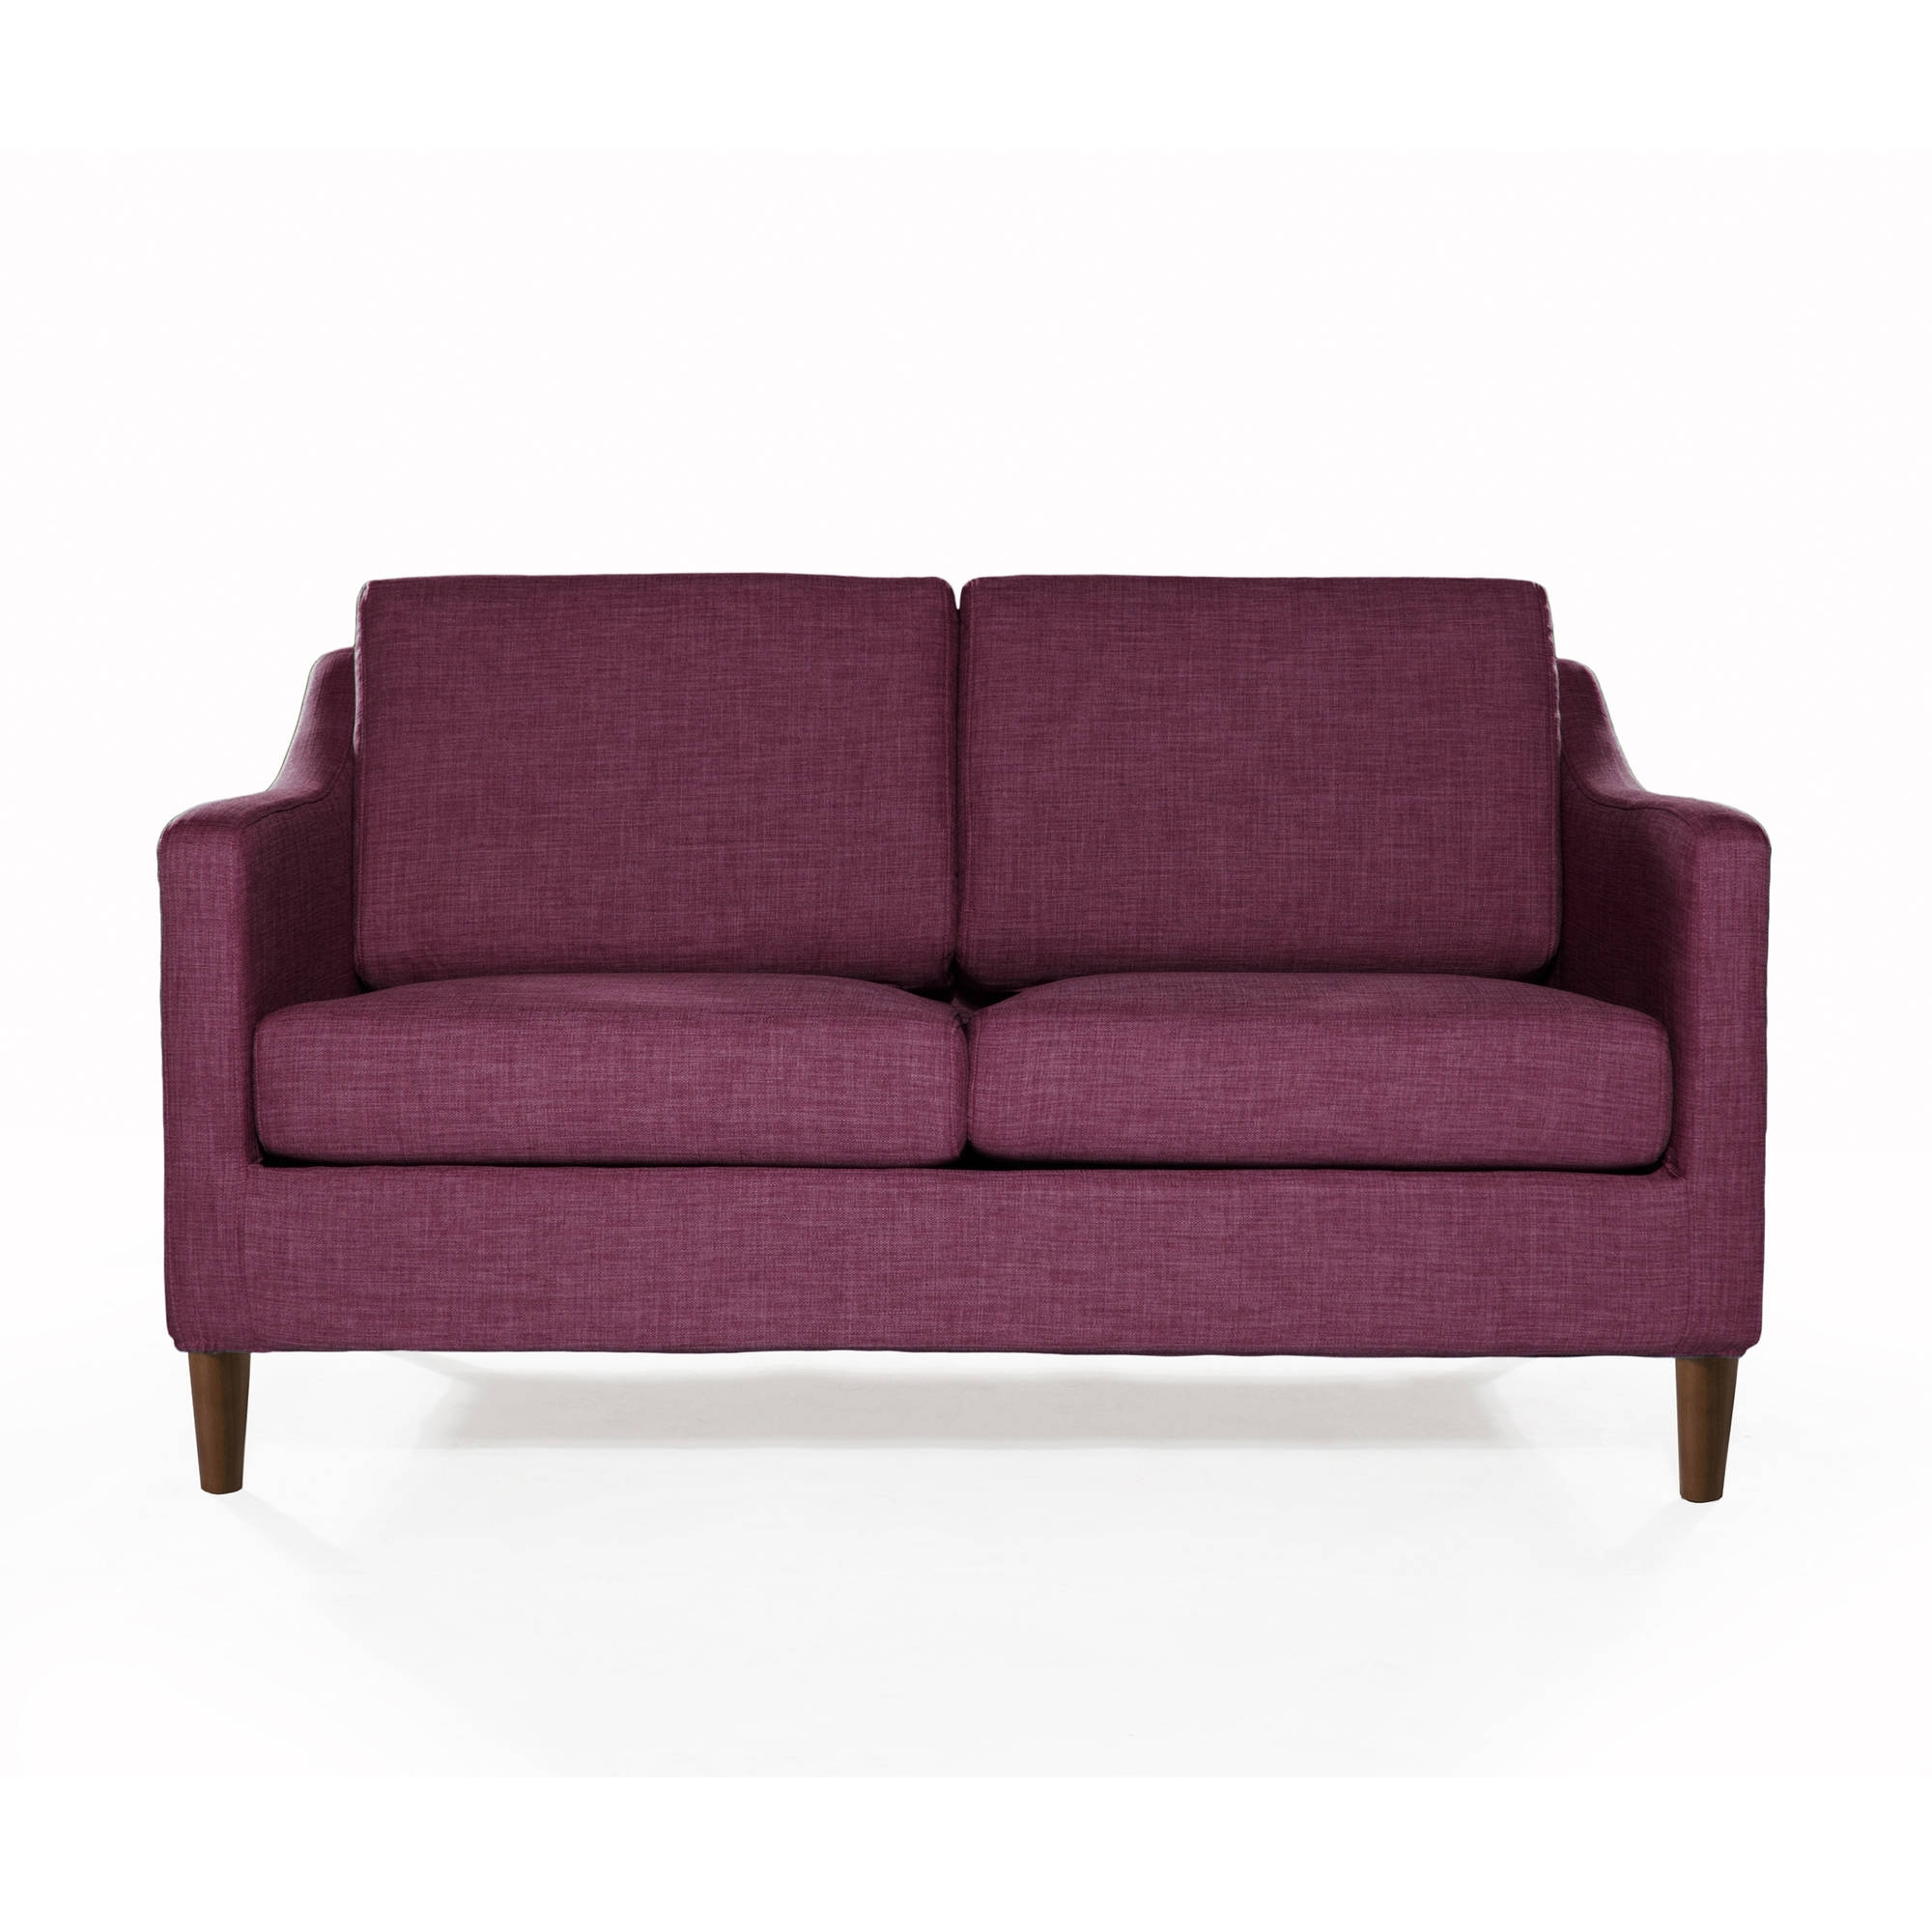 Most Up To Date Sectional Sofas At Walmart Throughout Sectional Sofas – Walmart (View 8 of 20)